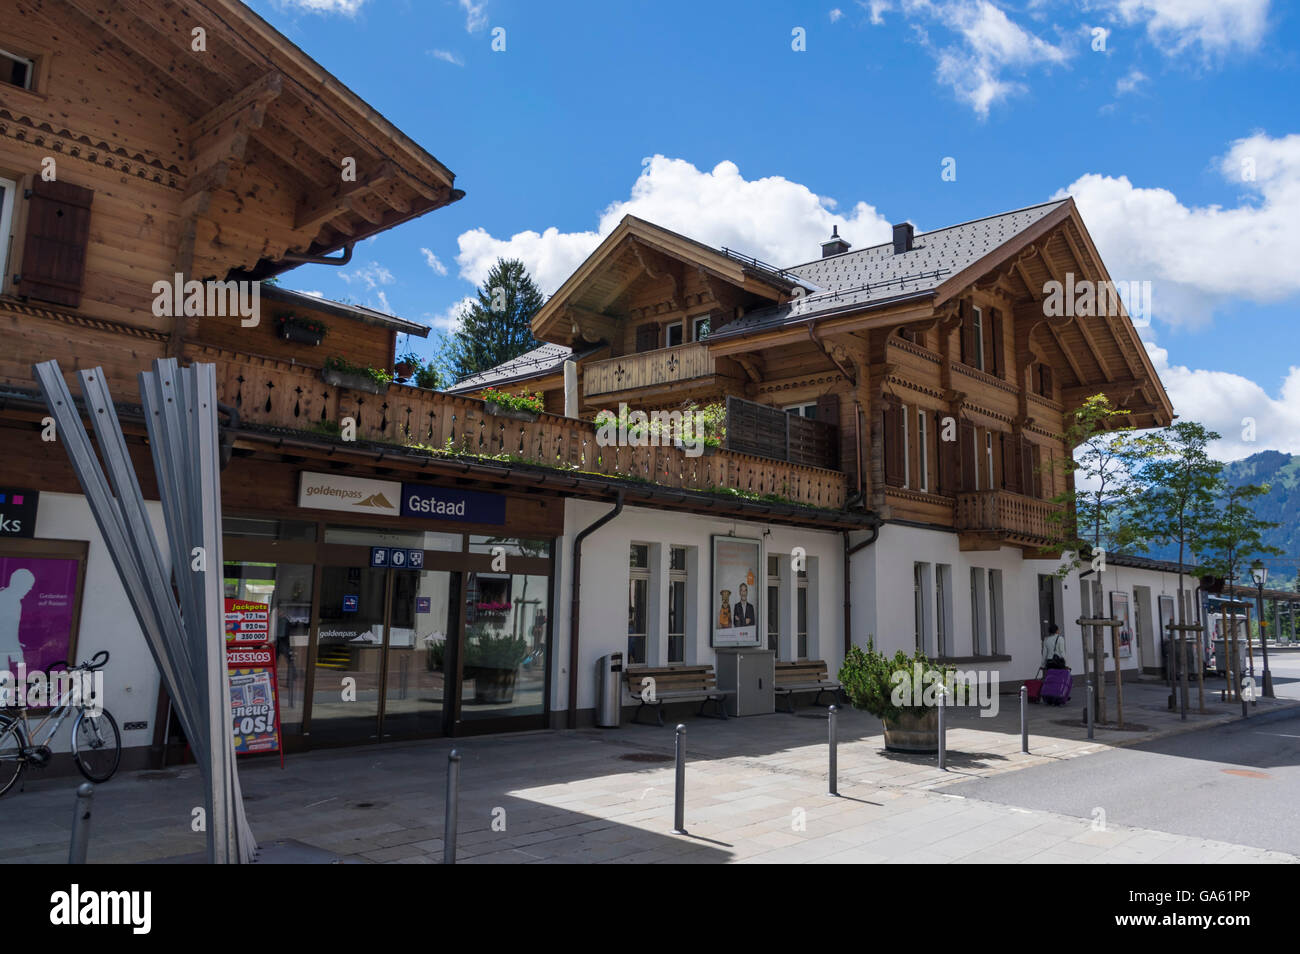 Train station of Gstaad, Switzerland, built in chalet style. Stock Photo